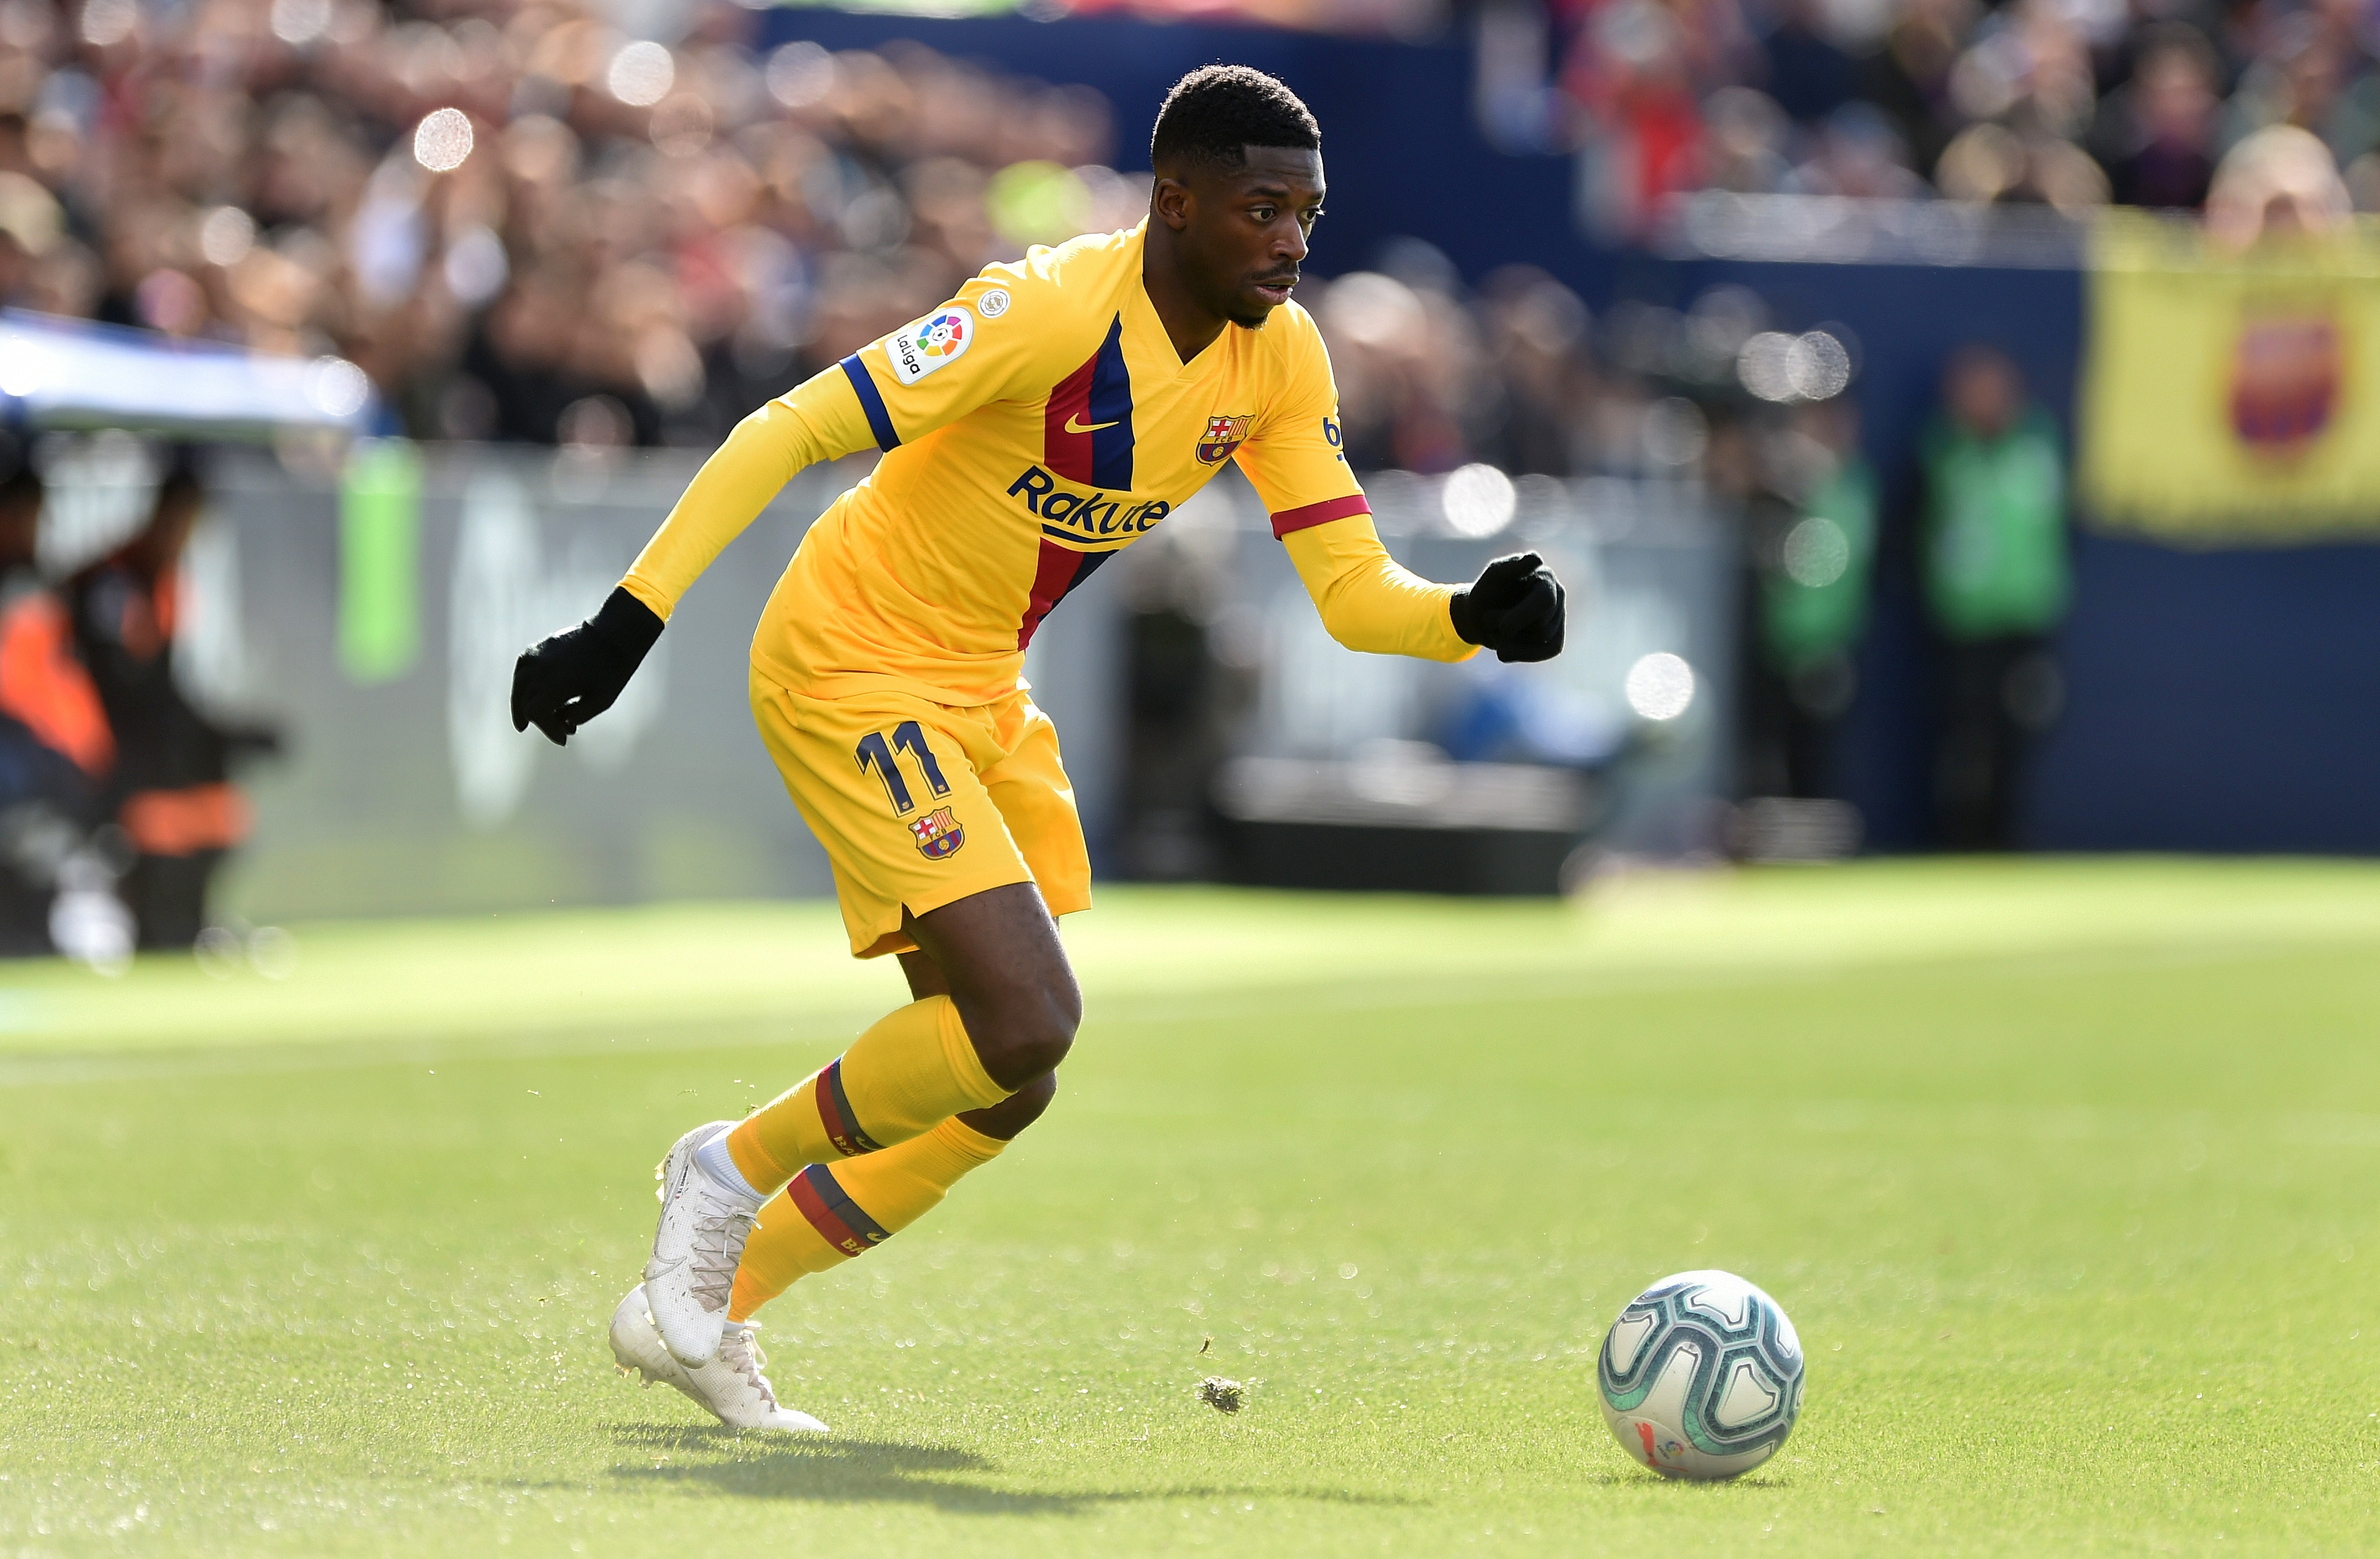 Liverpool have not tabled a loan offer for Ousmane Dembele who is in action in the picture